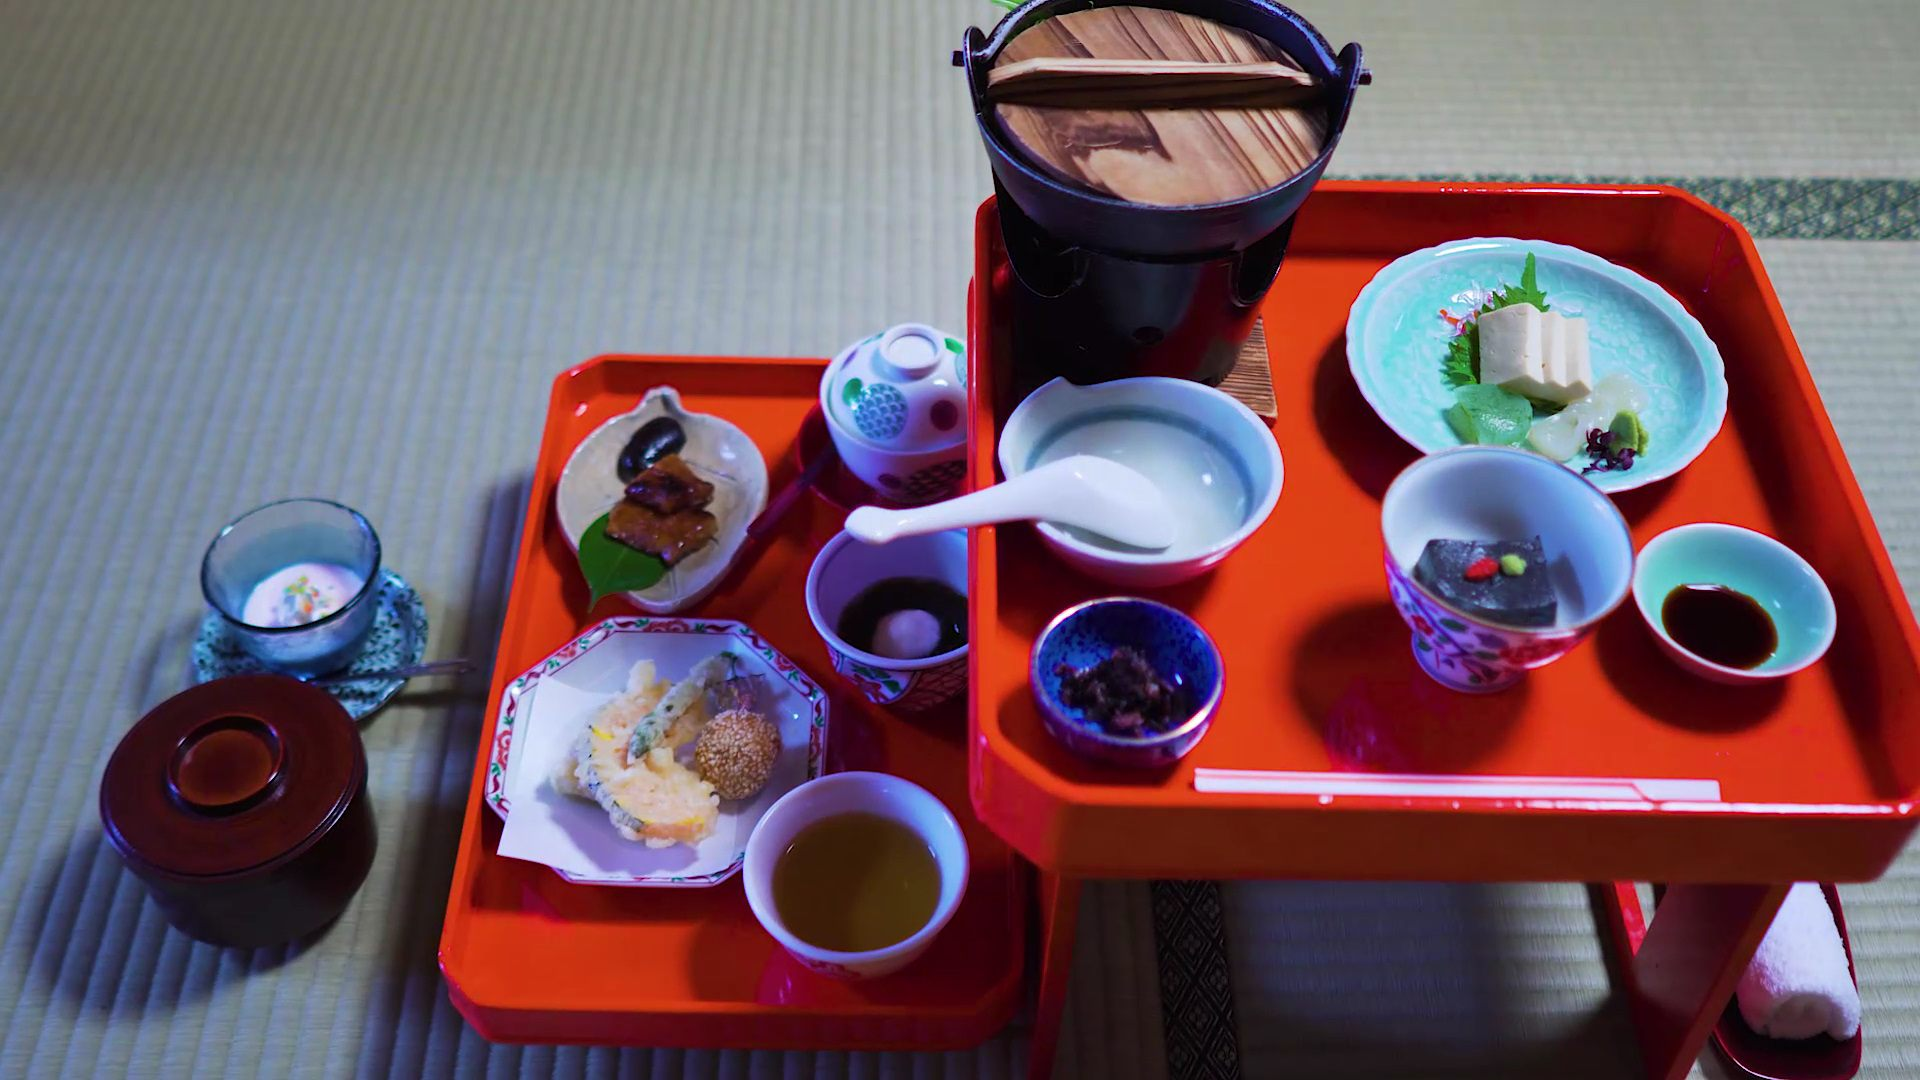 Visitors can try Buddhist vegetarian cuisine, too.